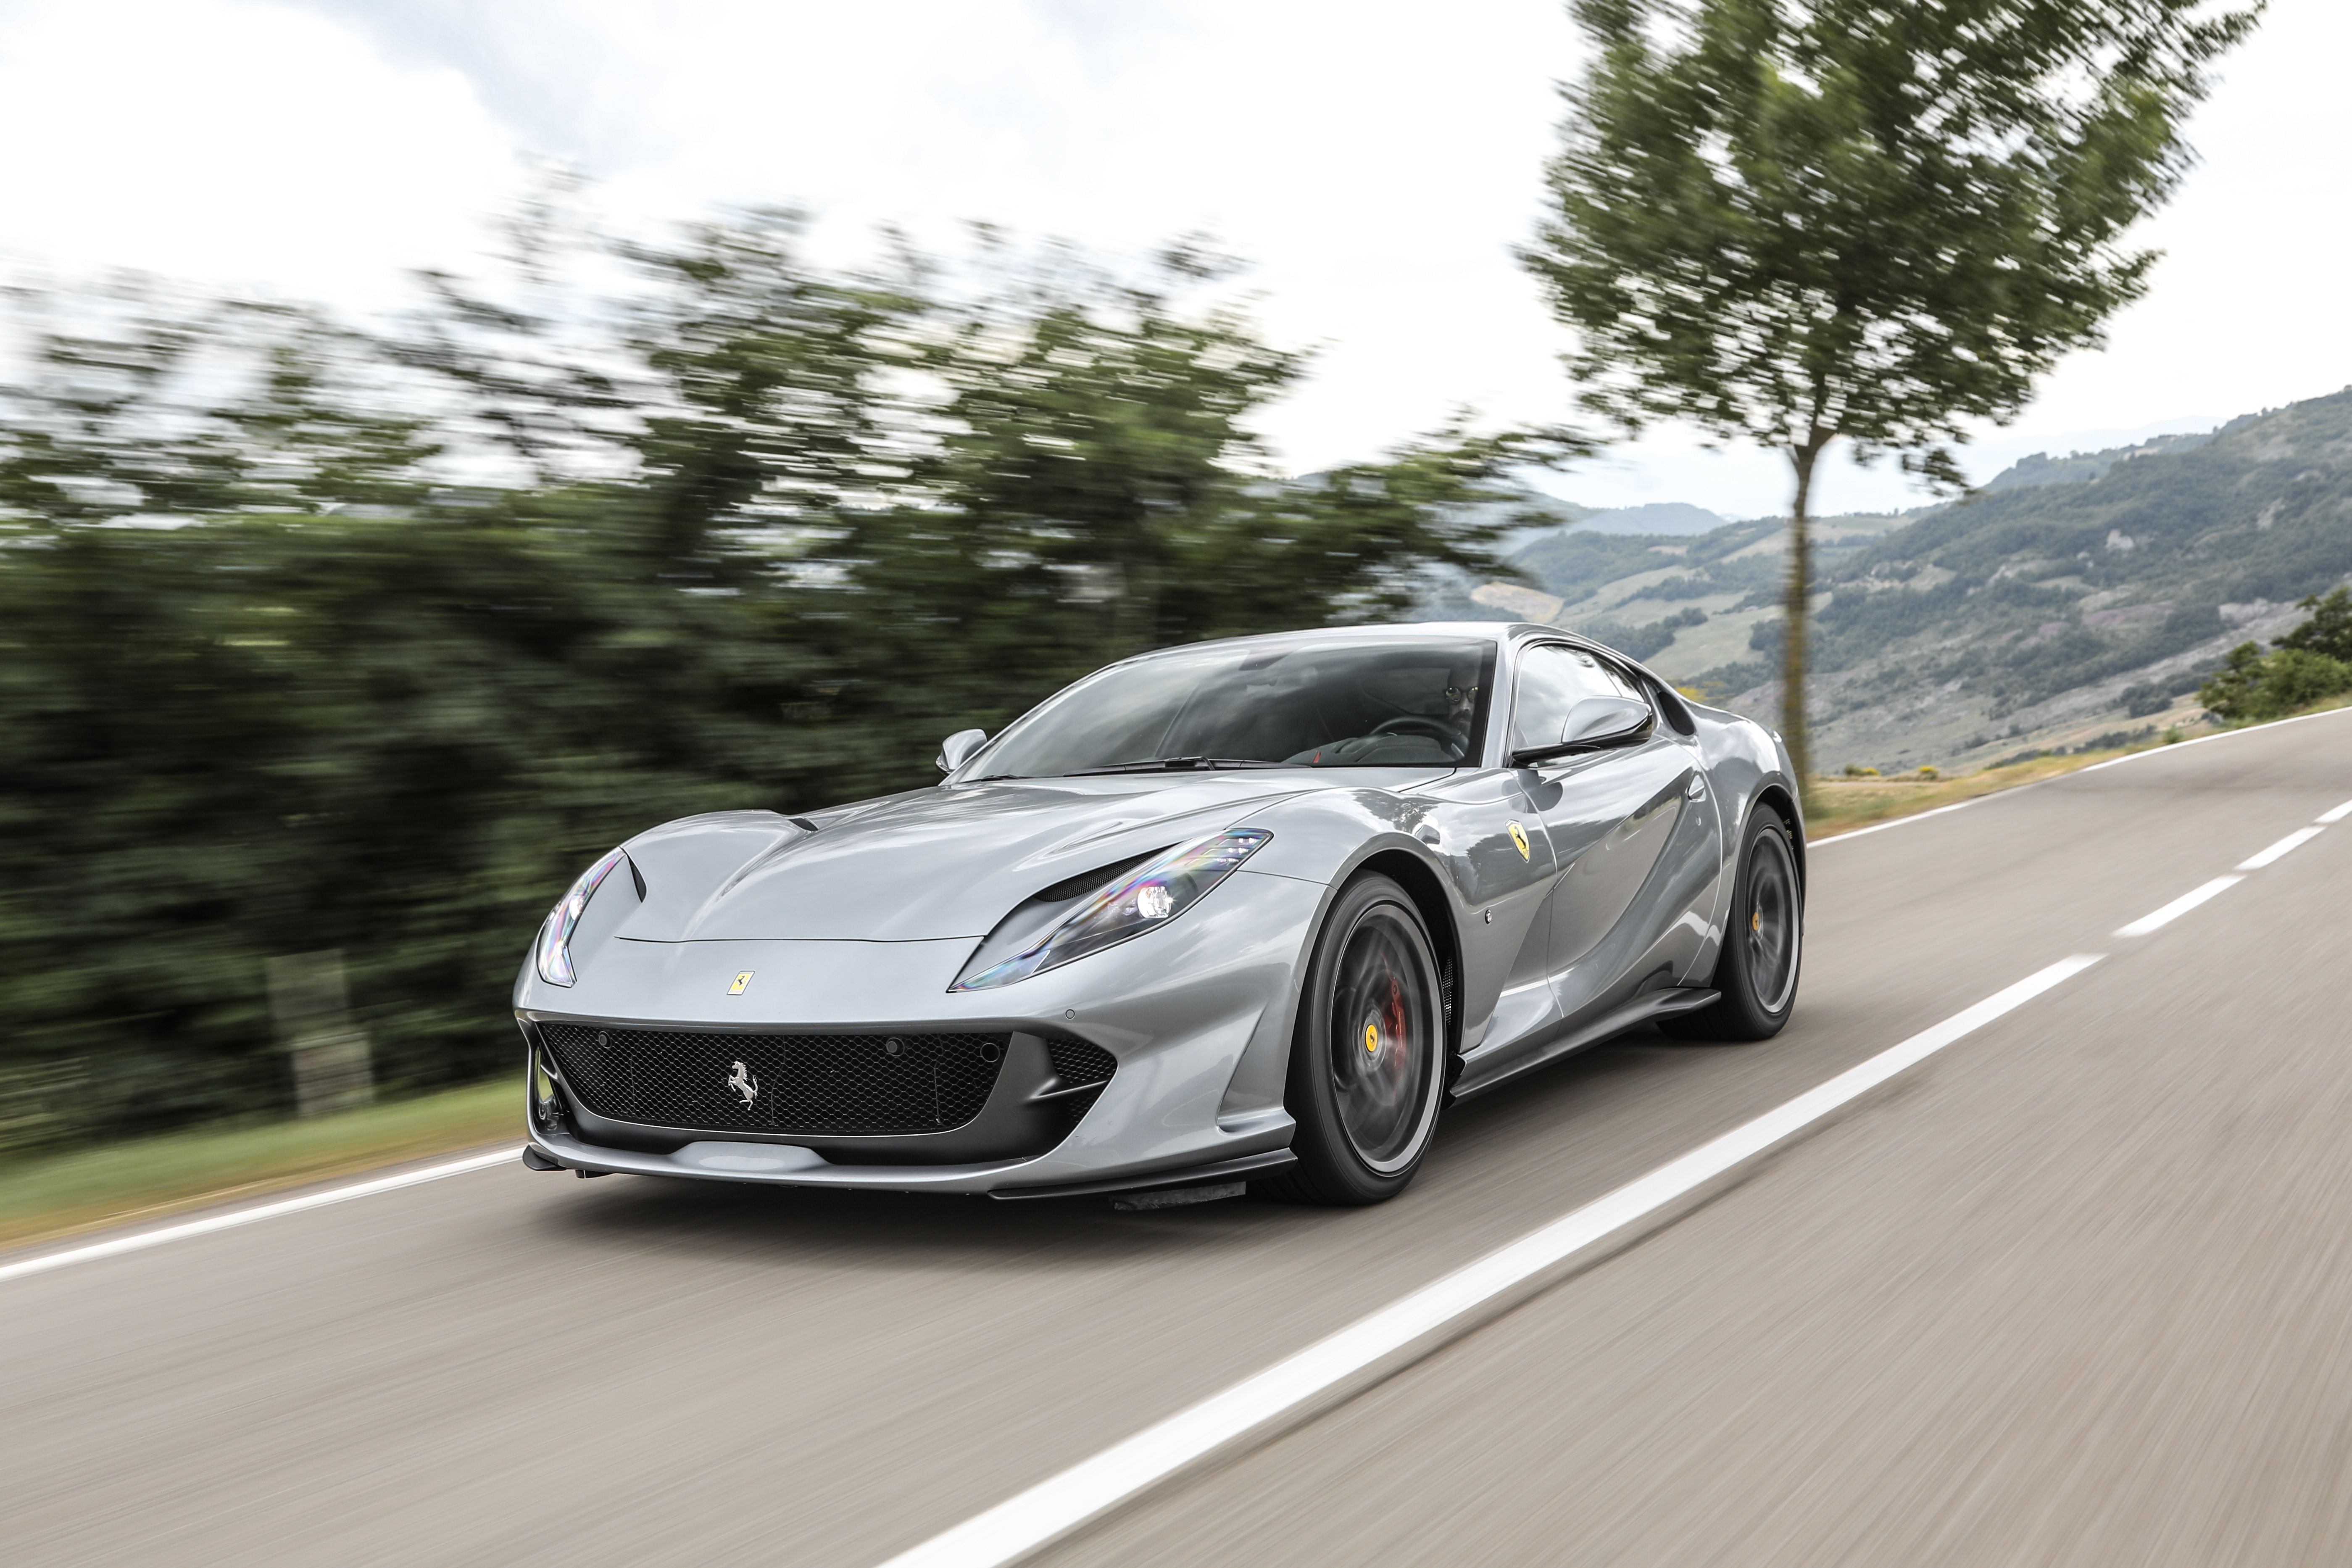 2021 Ferrari 812 Superfast Gts Review Pricing And Specs